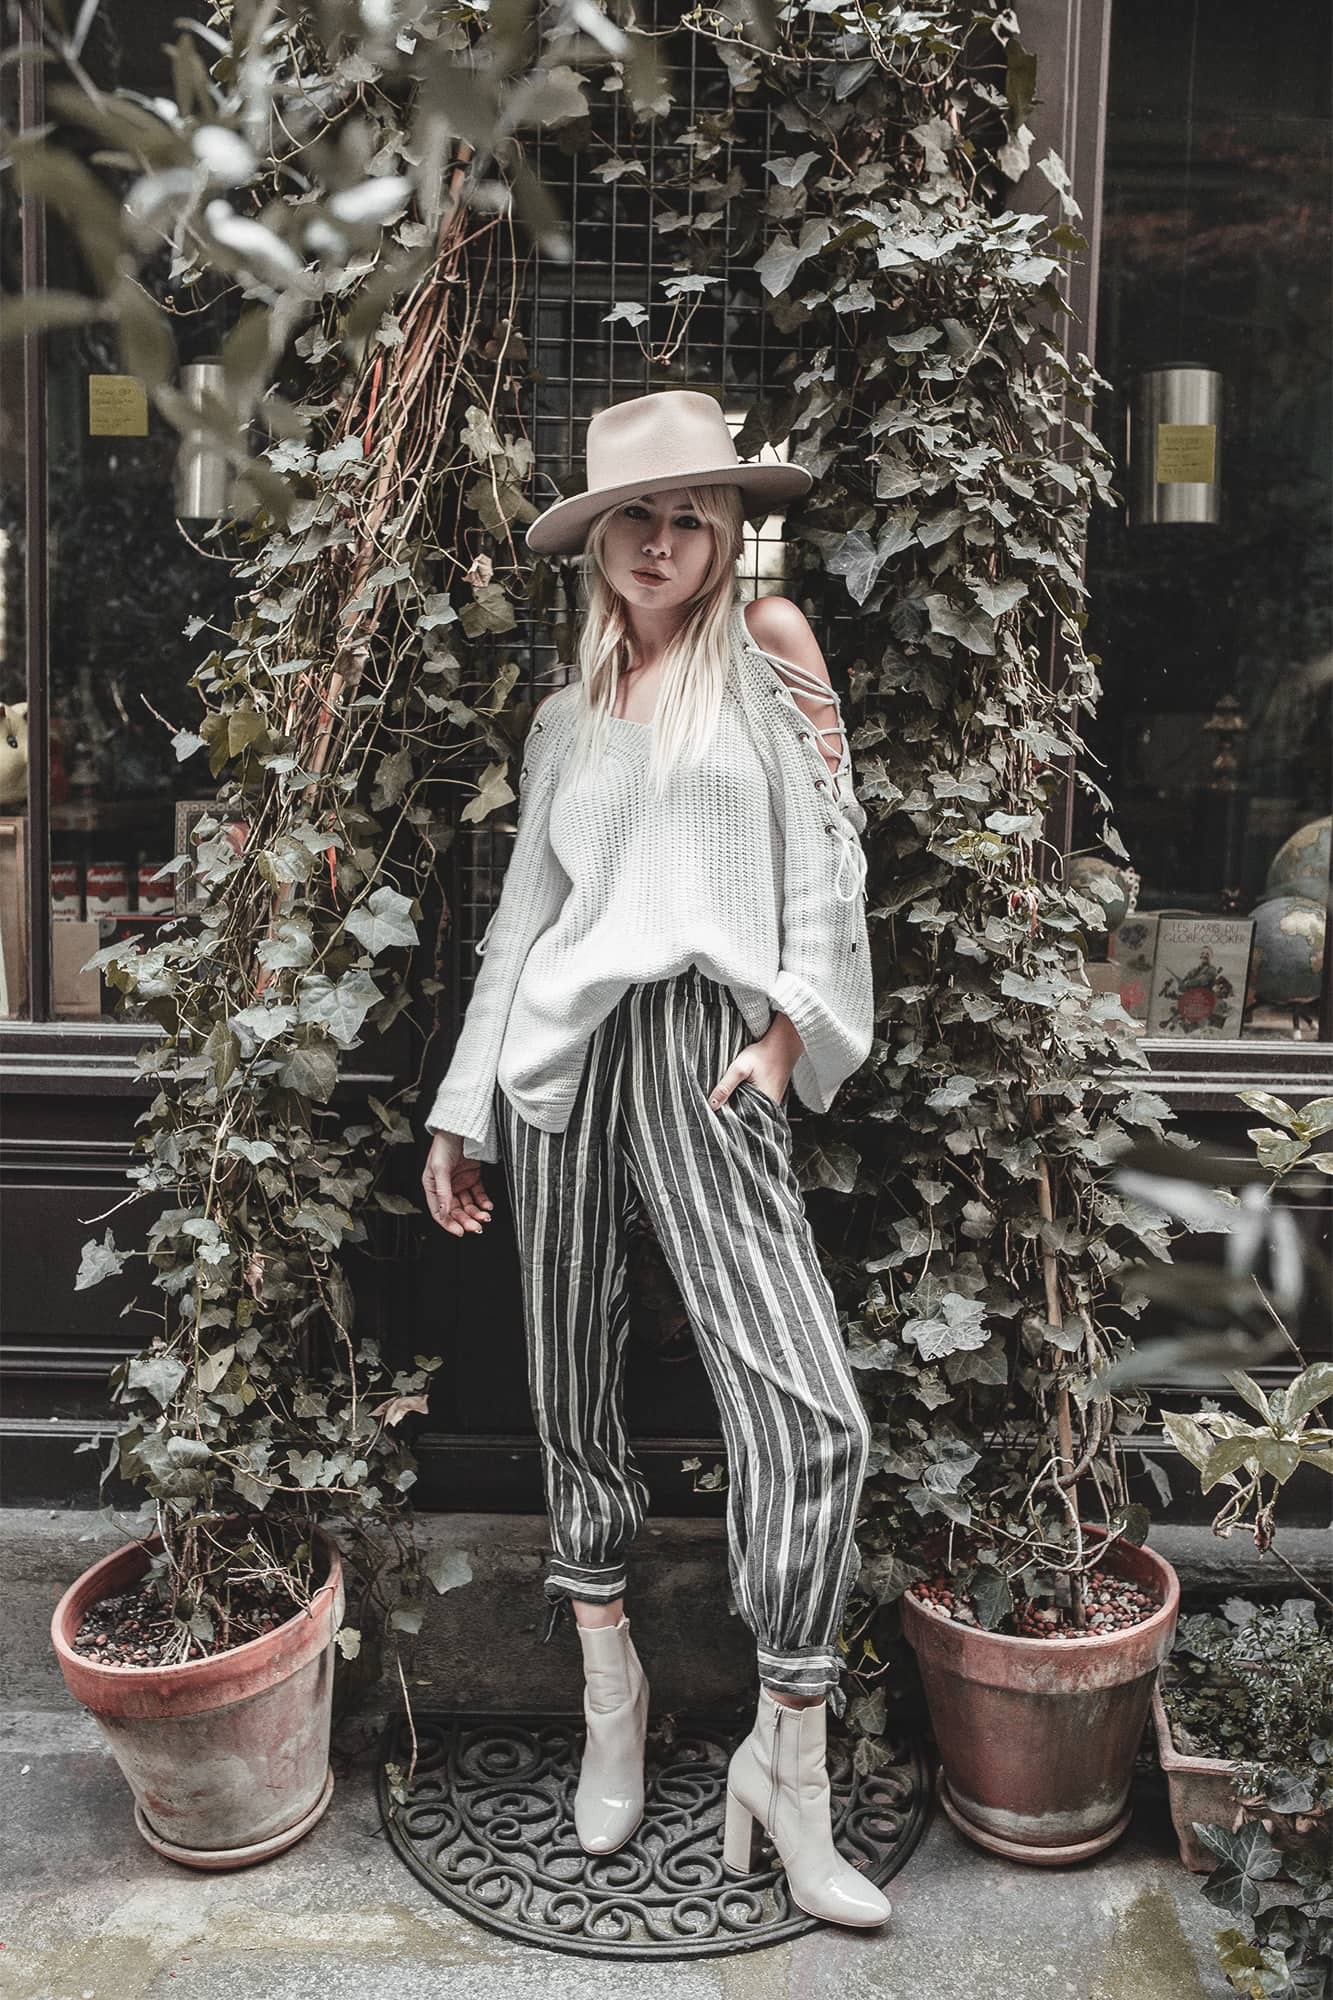 sarah loven wears comfy chic style in Paris